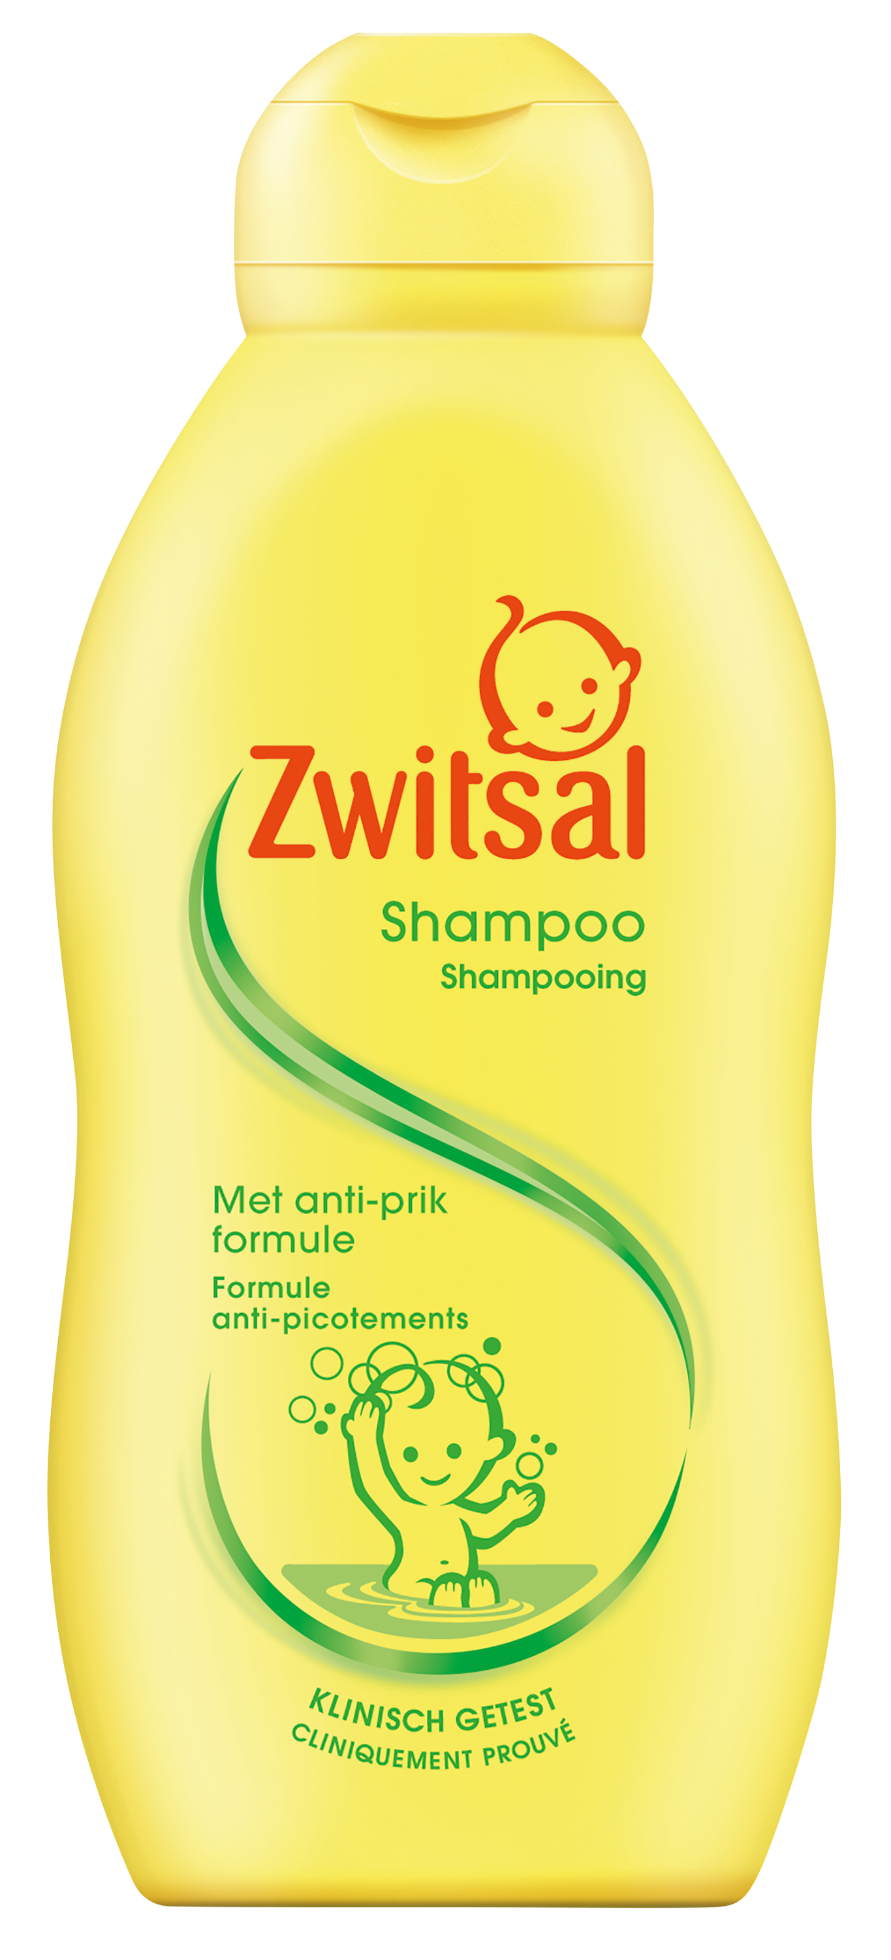 Shampoo   transparent background